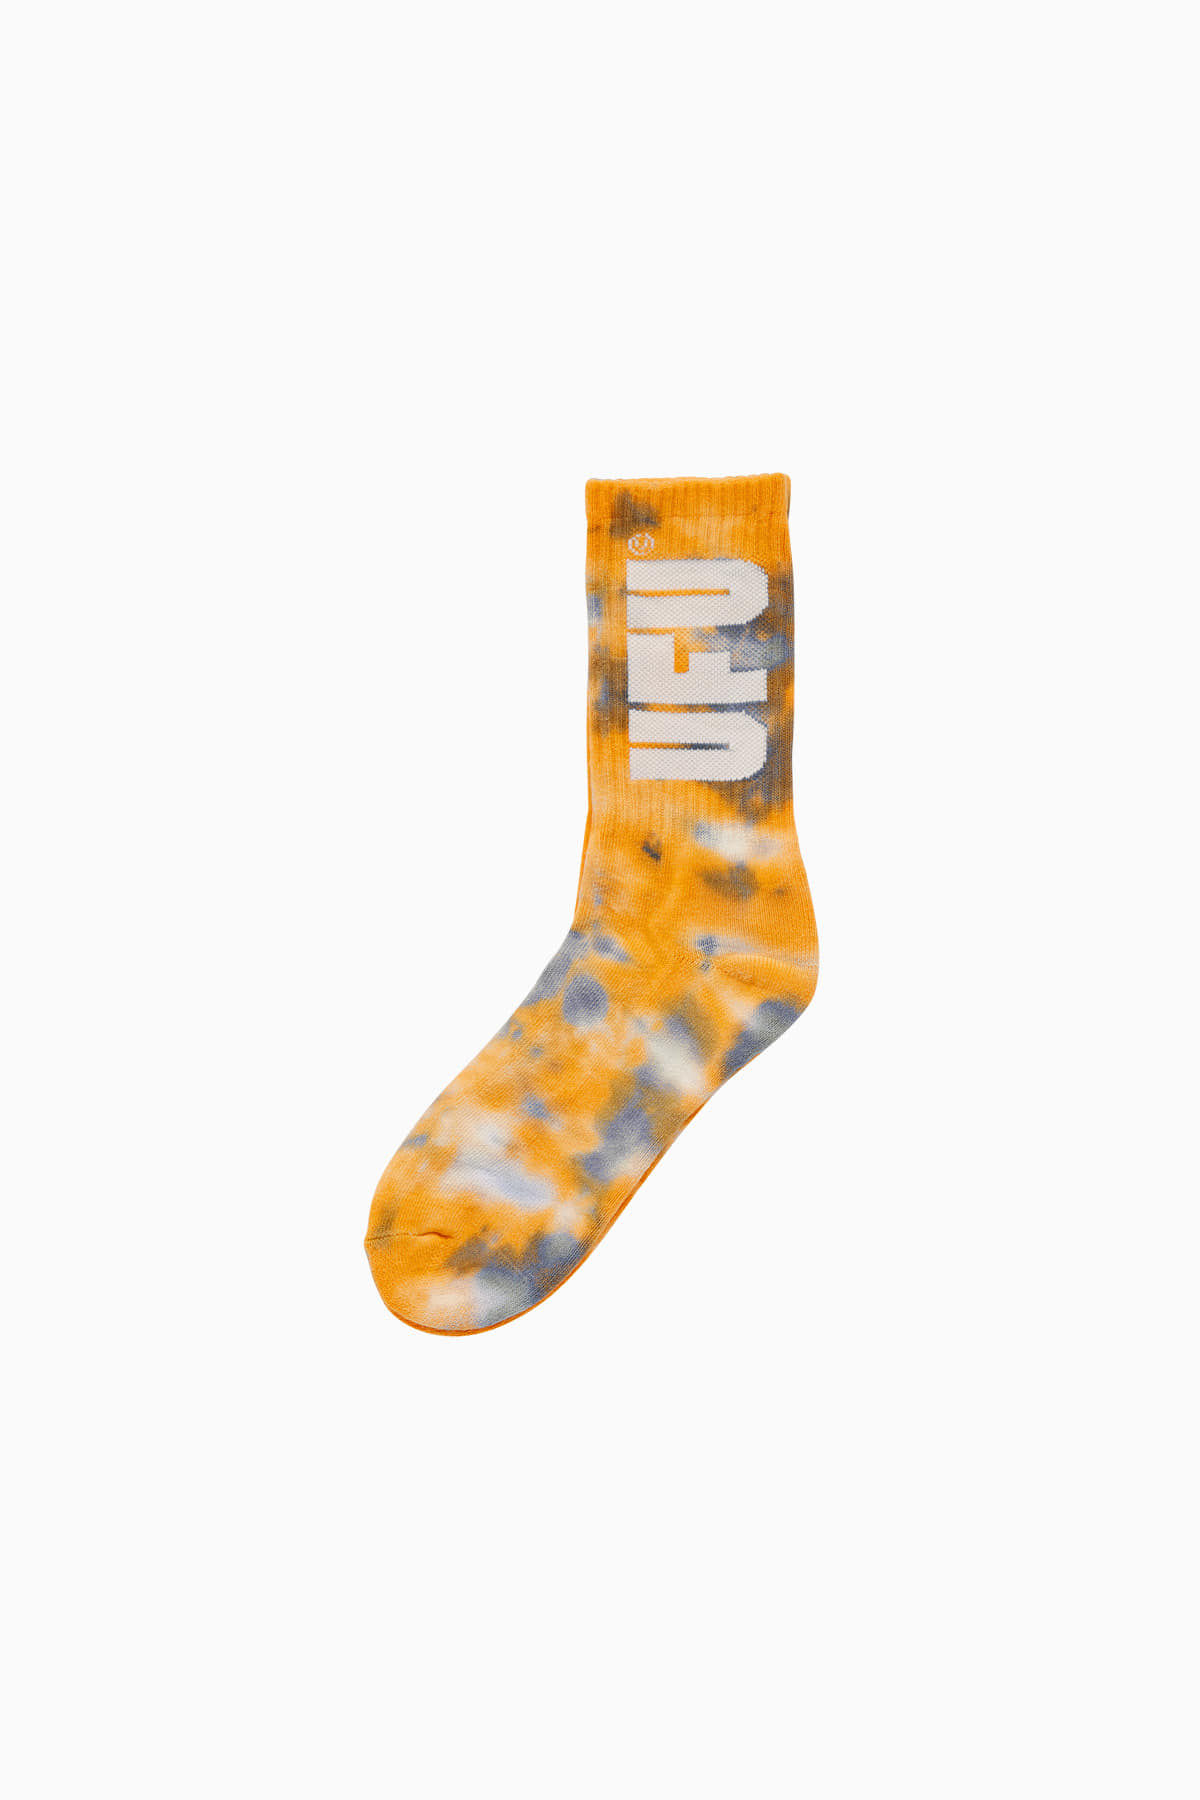 TIE DYE SOCKS_YELLOW